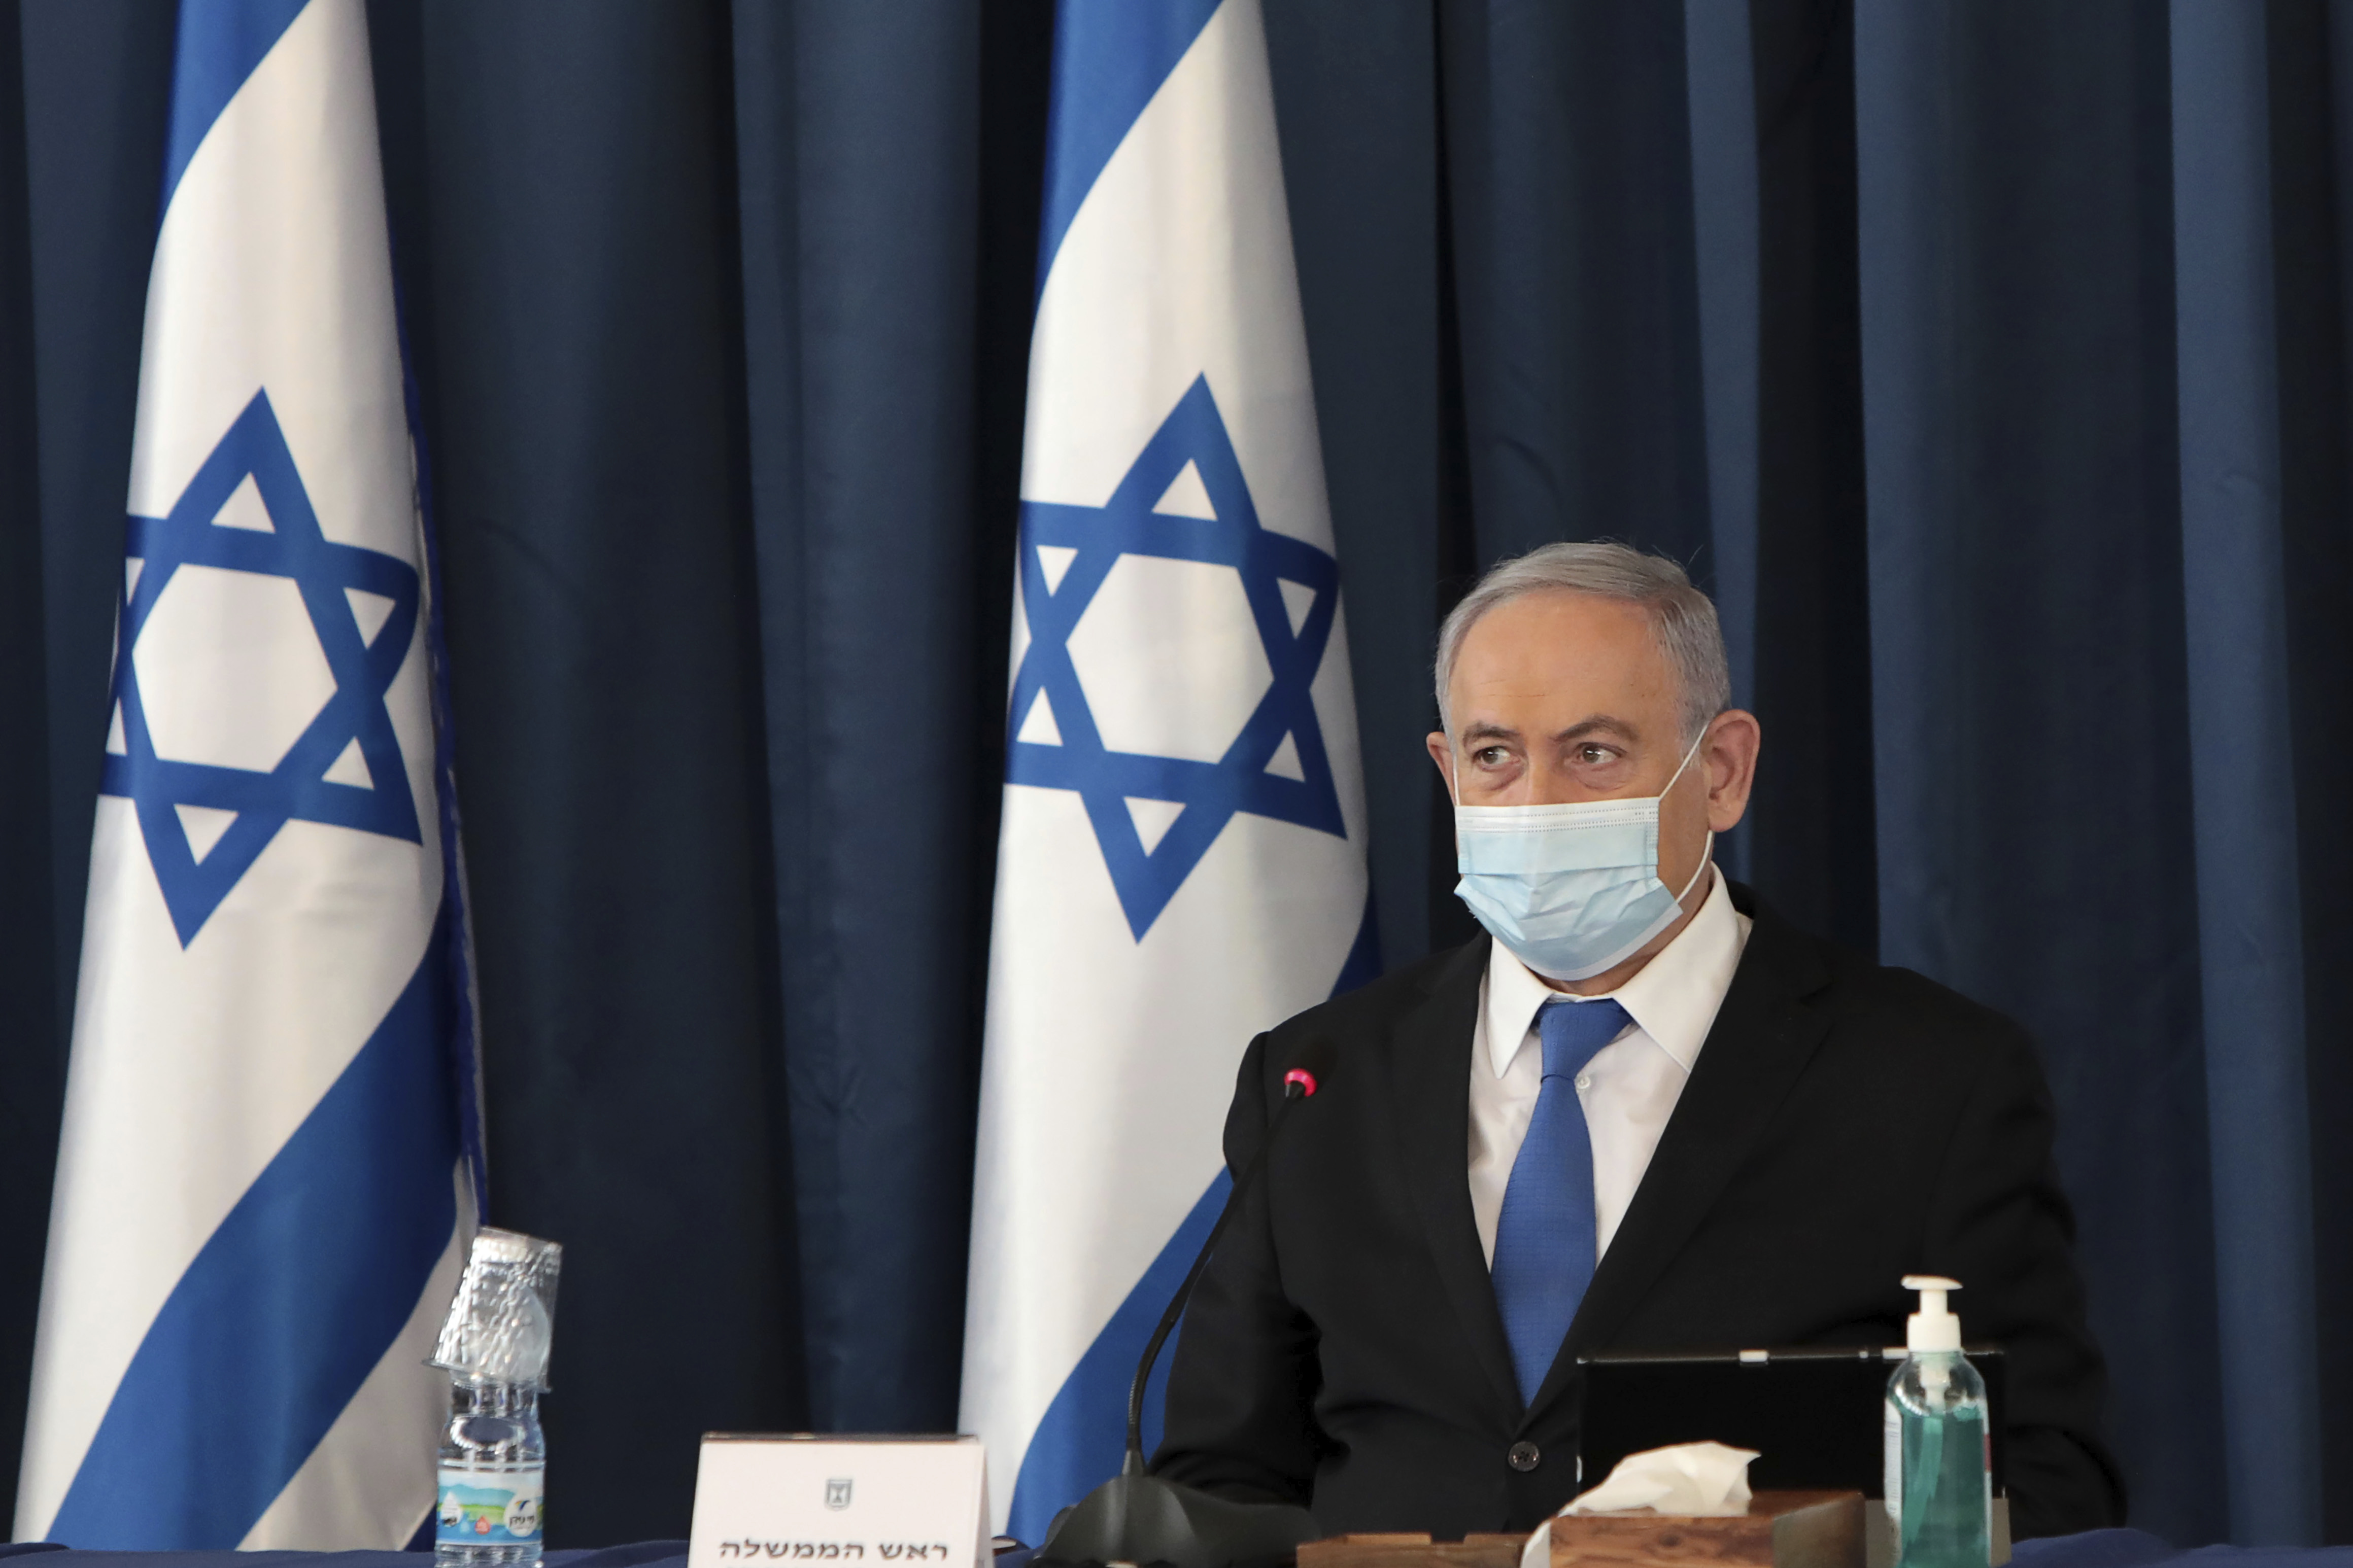 Israeli Prime Minister Benjamin Netanyahu wears a face mask to help prevent the spread of the coronavirus as he opens the weekly cabinet meeting, at the foreign ministry, in Jerusalem, July 5, 2020.